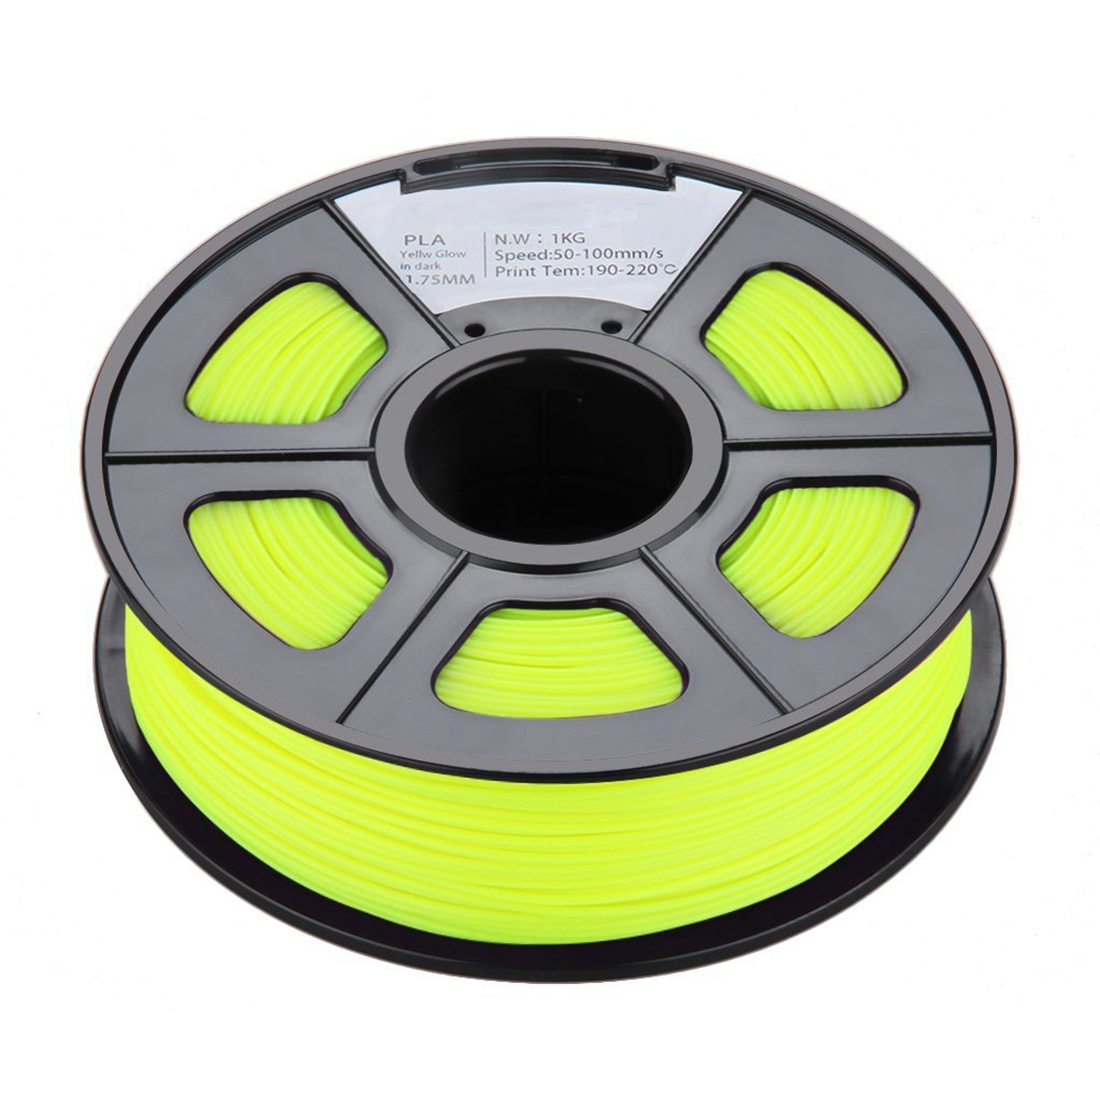 New 1.75mm Glow in the Dark PLA 3D Printer Filament - 1kg Spool (2.2 lbs) - Dimensional Accuracy +/- 0.02mm (Yellow) hyalual маска wow mask 5 шт уп маска wow mask 5 шт уп 5 шт уп